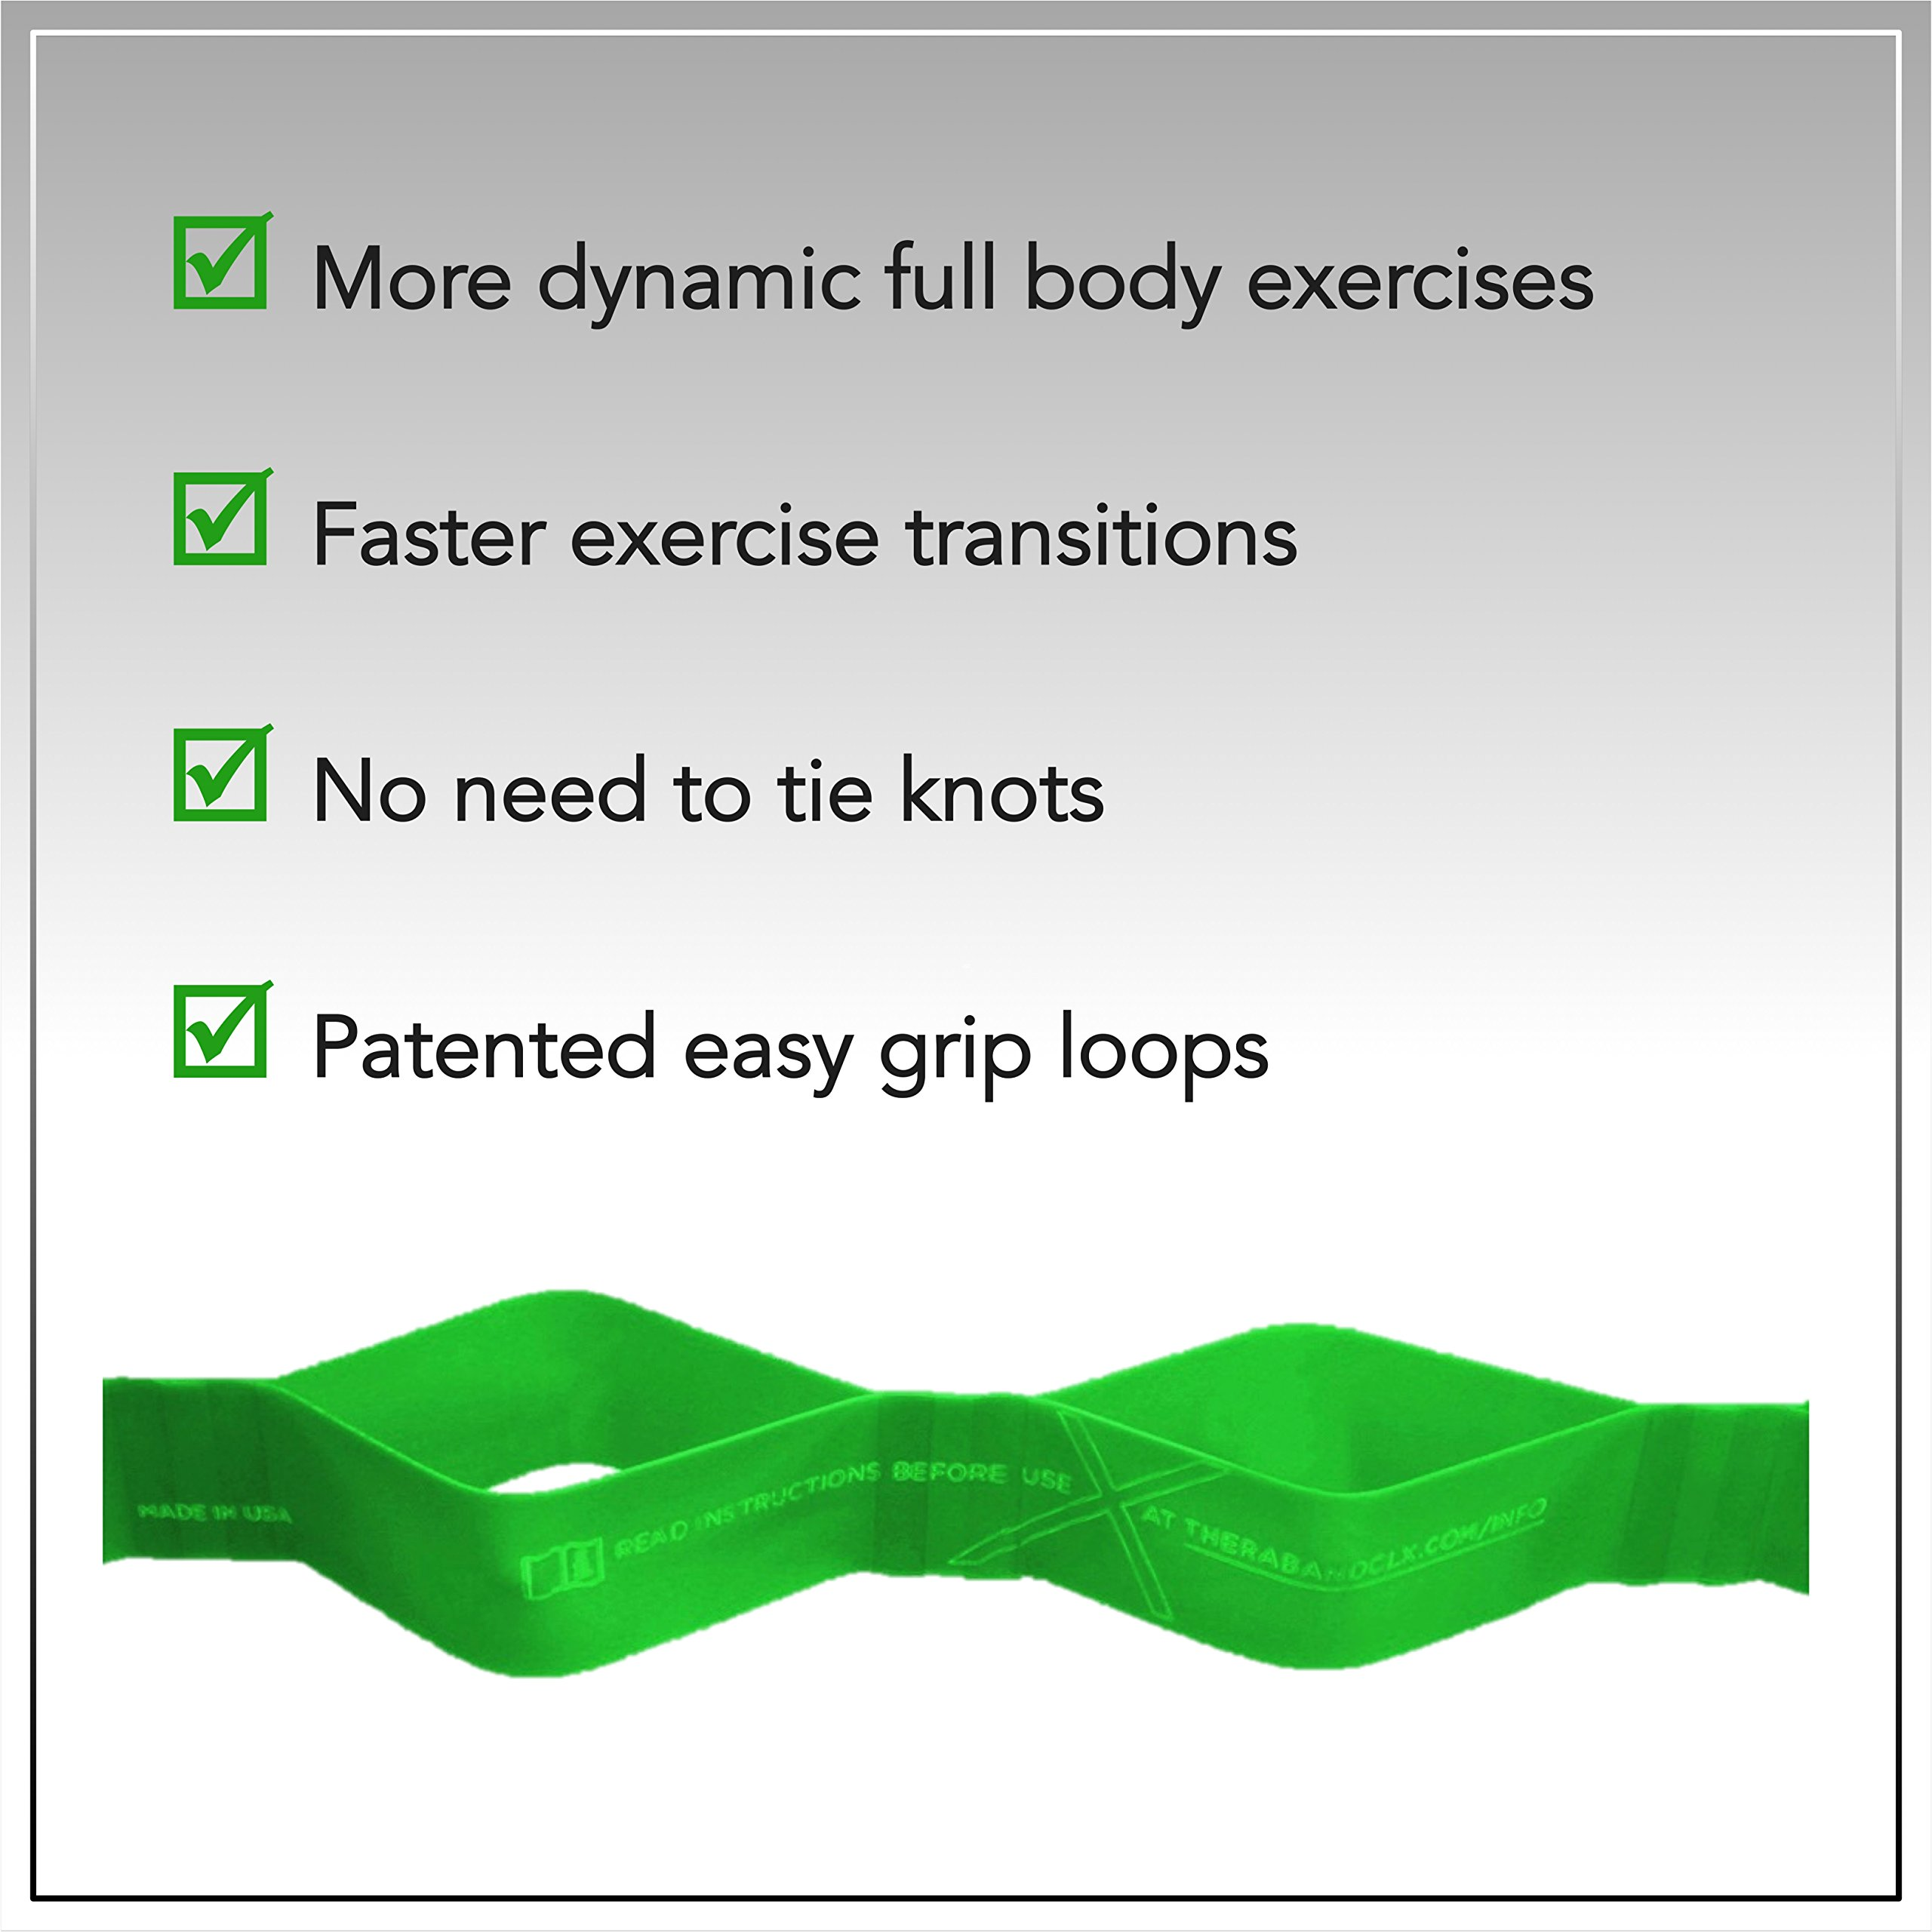 TheraBand CLX Resistance Band with Loops, Fitness Band for Home Exercise and Full Body Workouts, Portable Gym Equipment, Gift for Athletes, Individual 5 Foot Band, Green, Heavy, Intermediate Level 1 by TheraBand (Image #7)